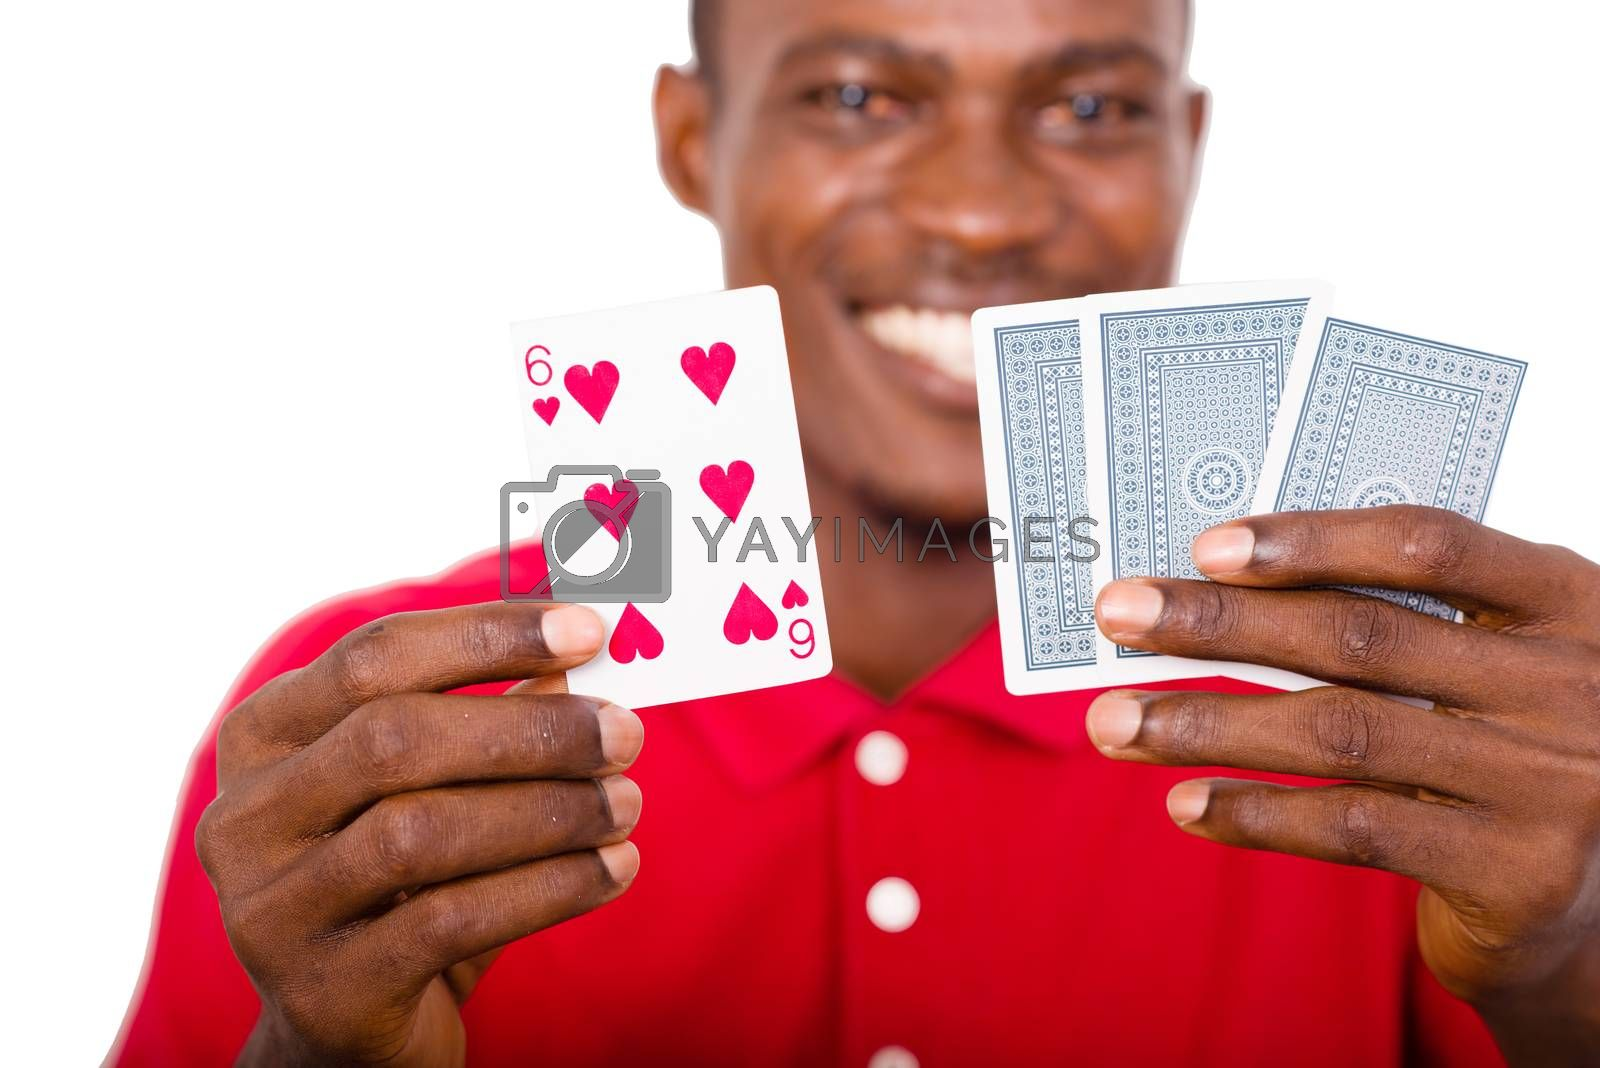 Young man smiling and happy shows in his hands playing cards.close-up on the cards.